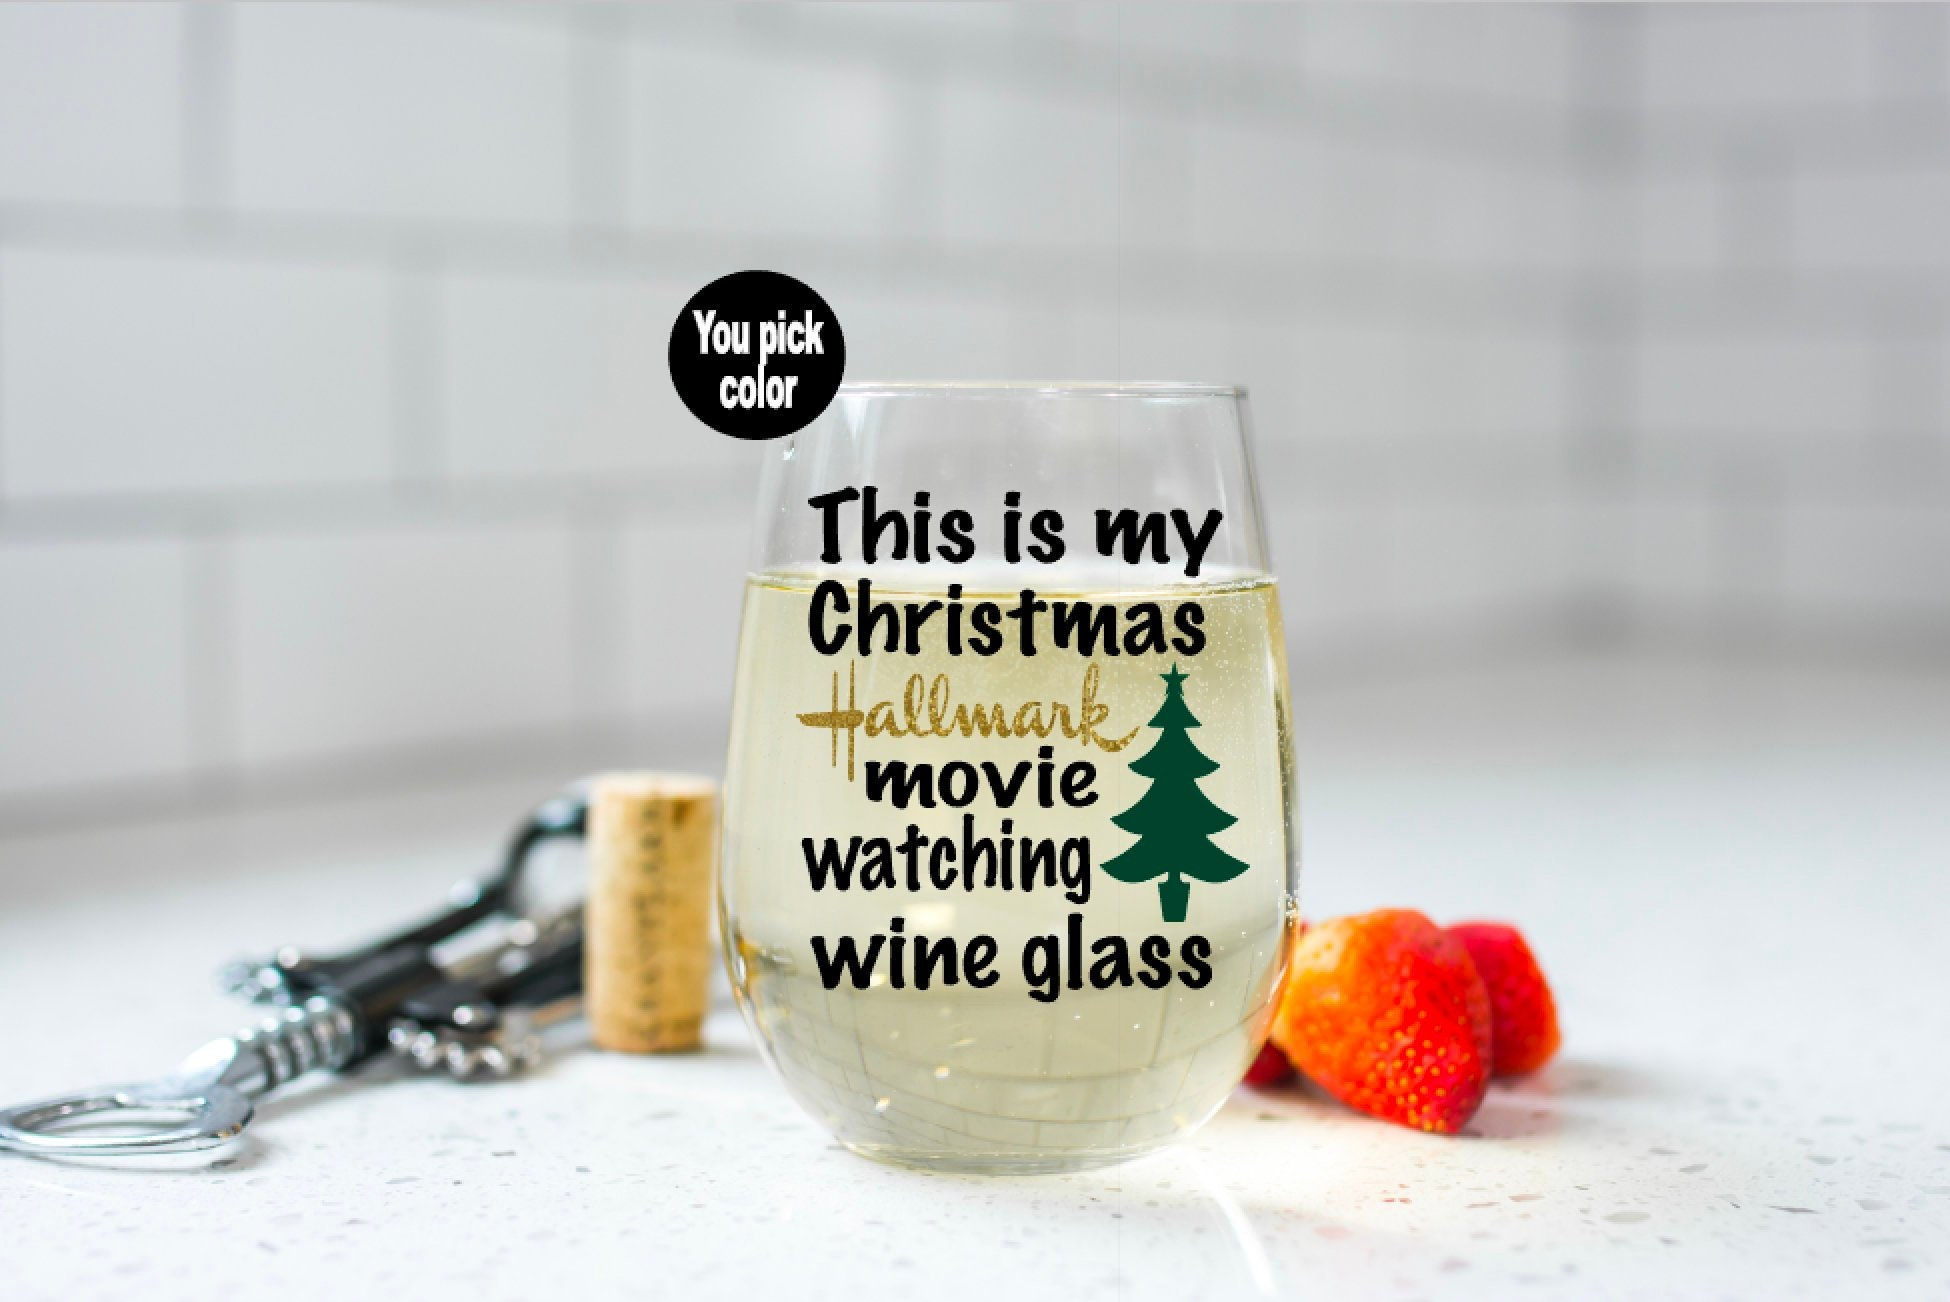 Christmas Wine Glass This my Hallmark movies wine glass | Etsy